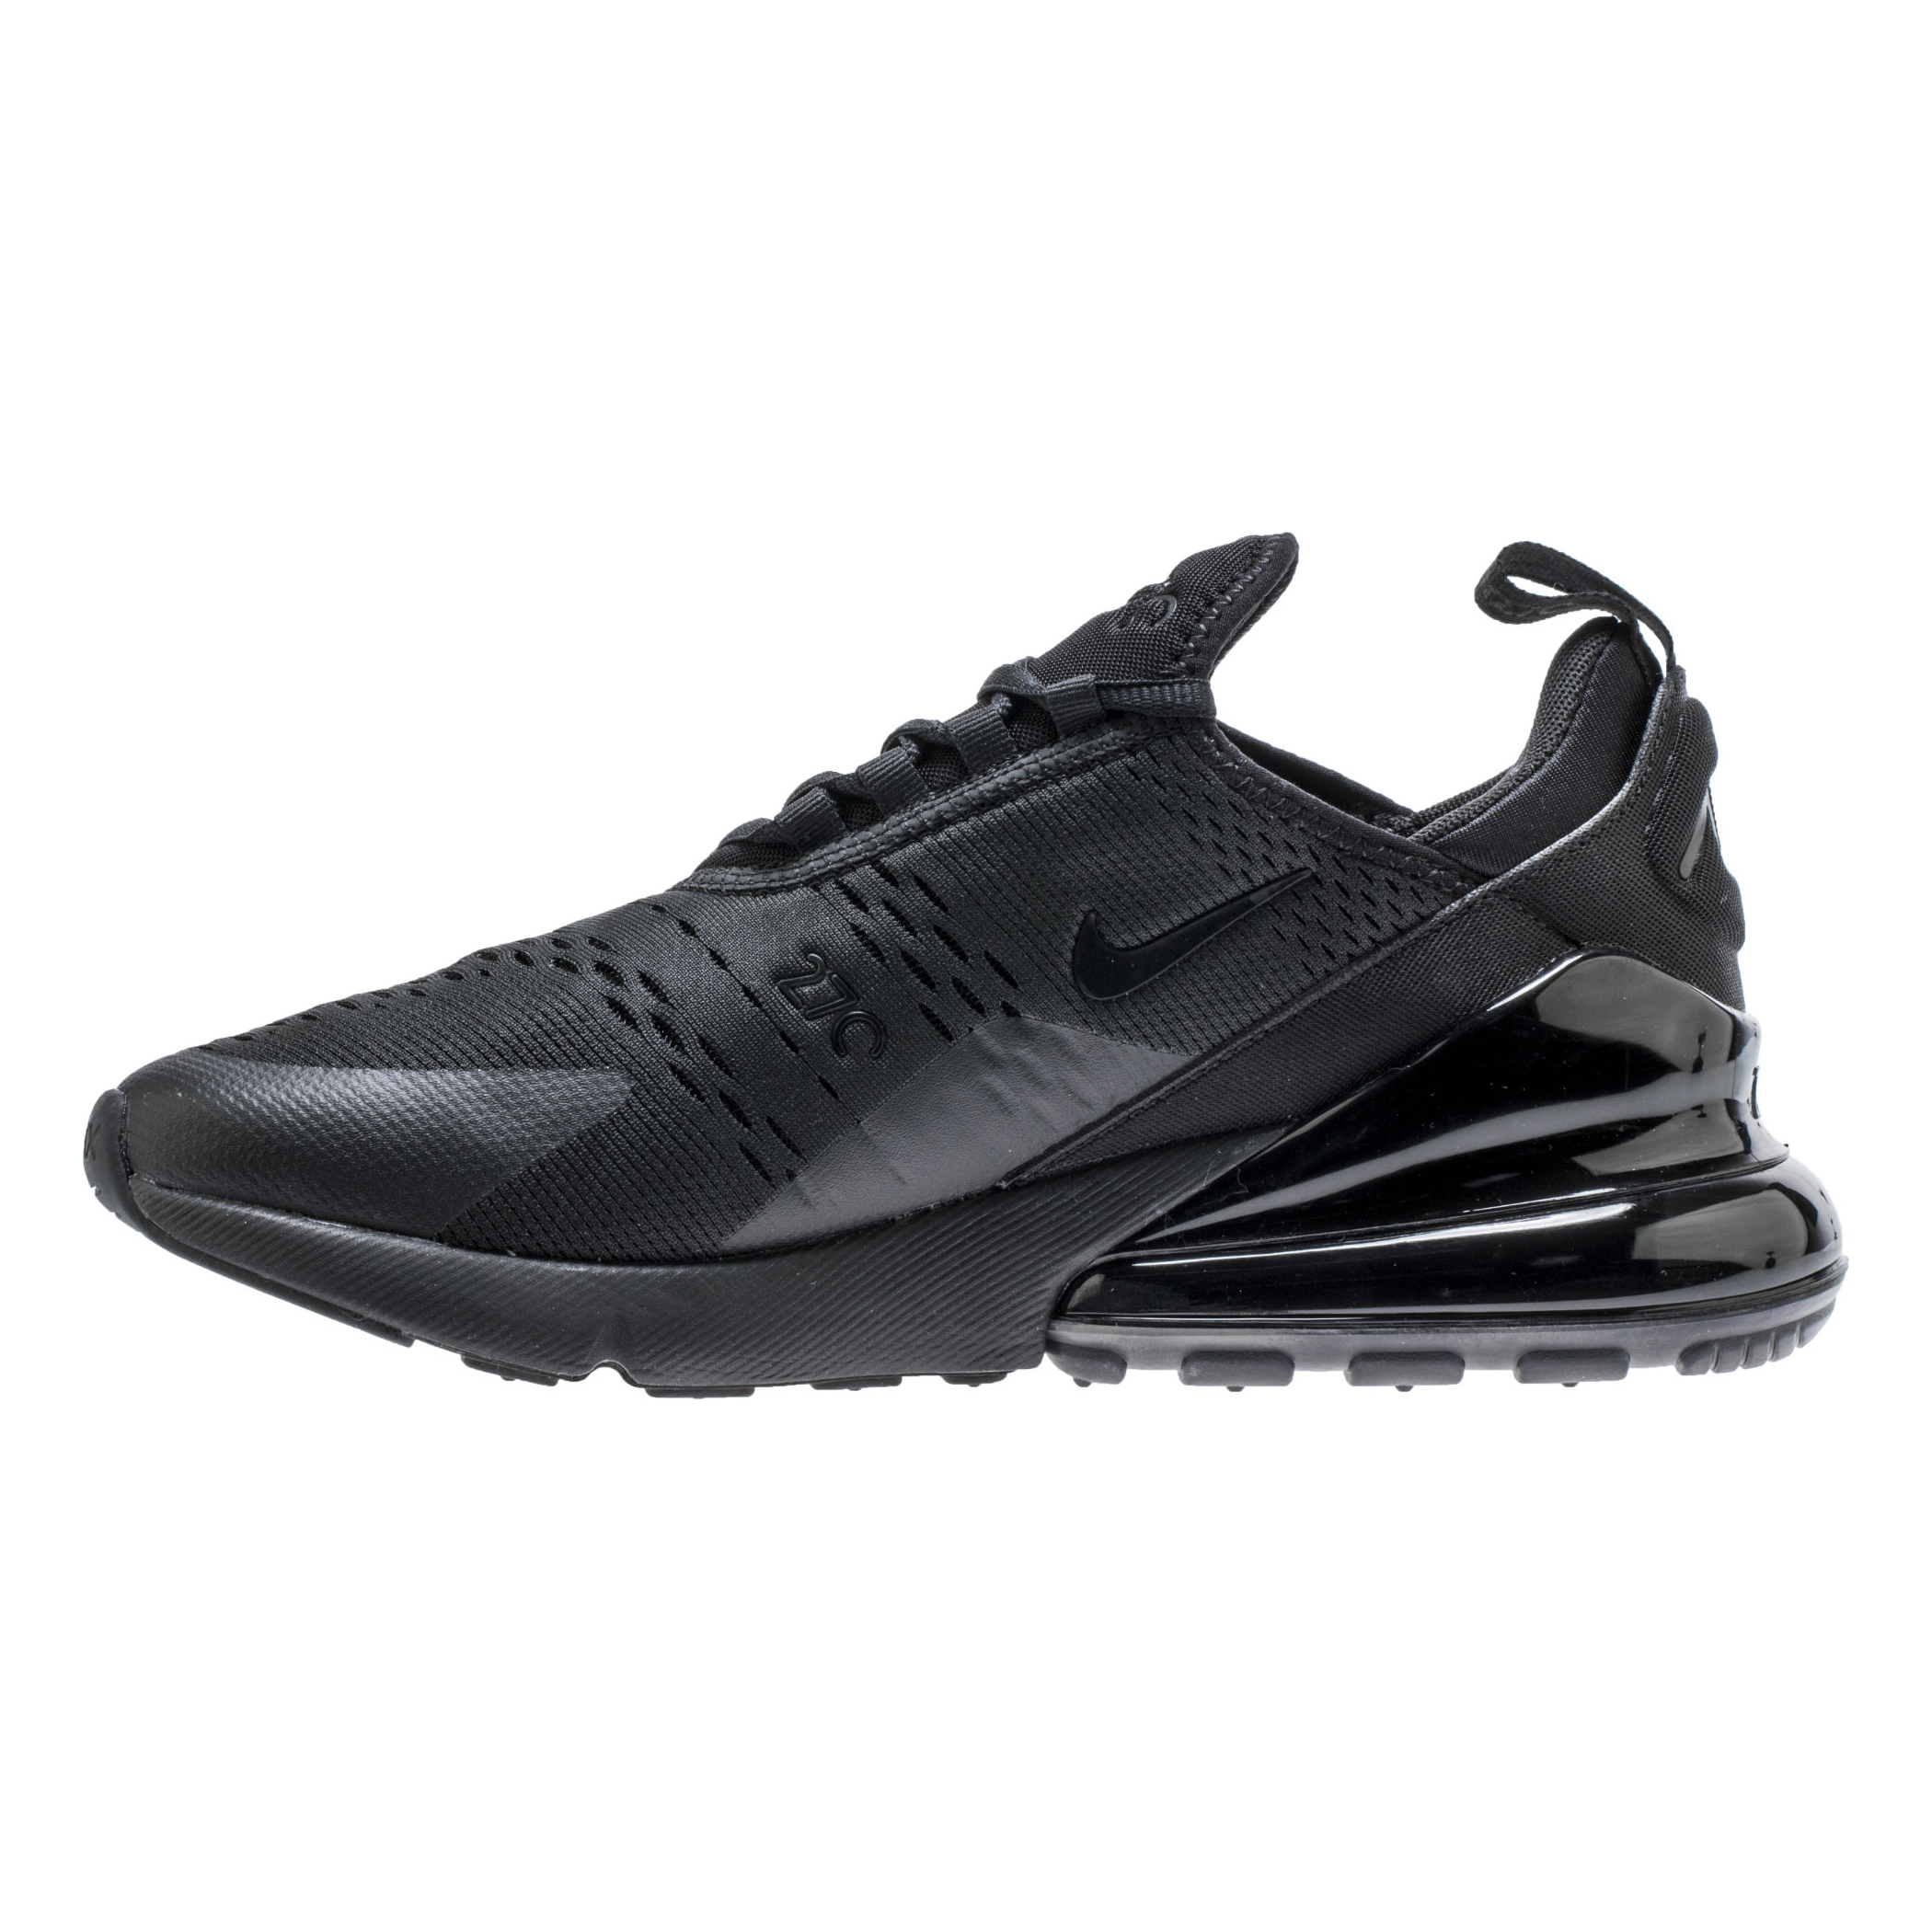 First Look At The Nike Air Max 270 Flyknit Black White